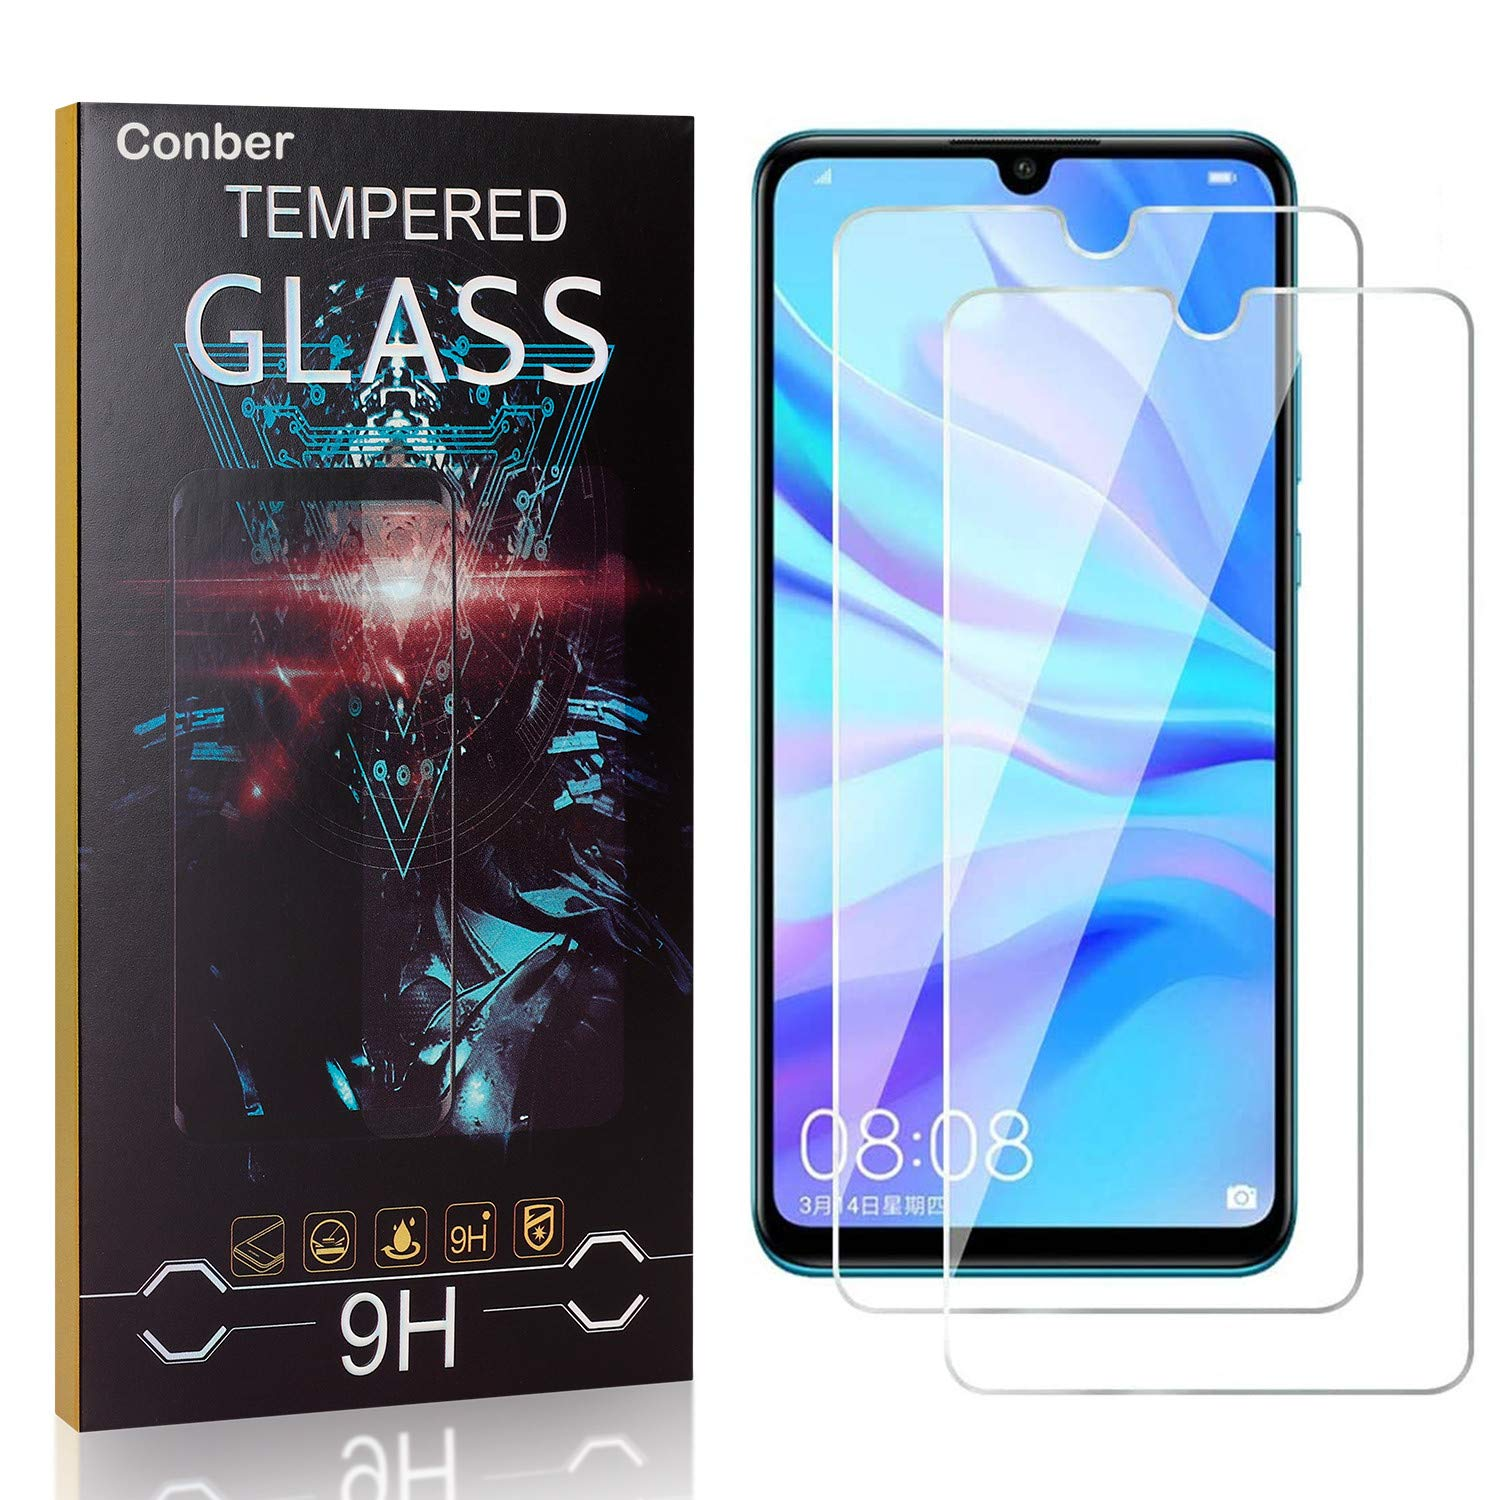 Conber Screen supreme Protector for Huawei Enjoy Temper 10S 9H Pack Max 59% OFF 2